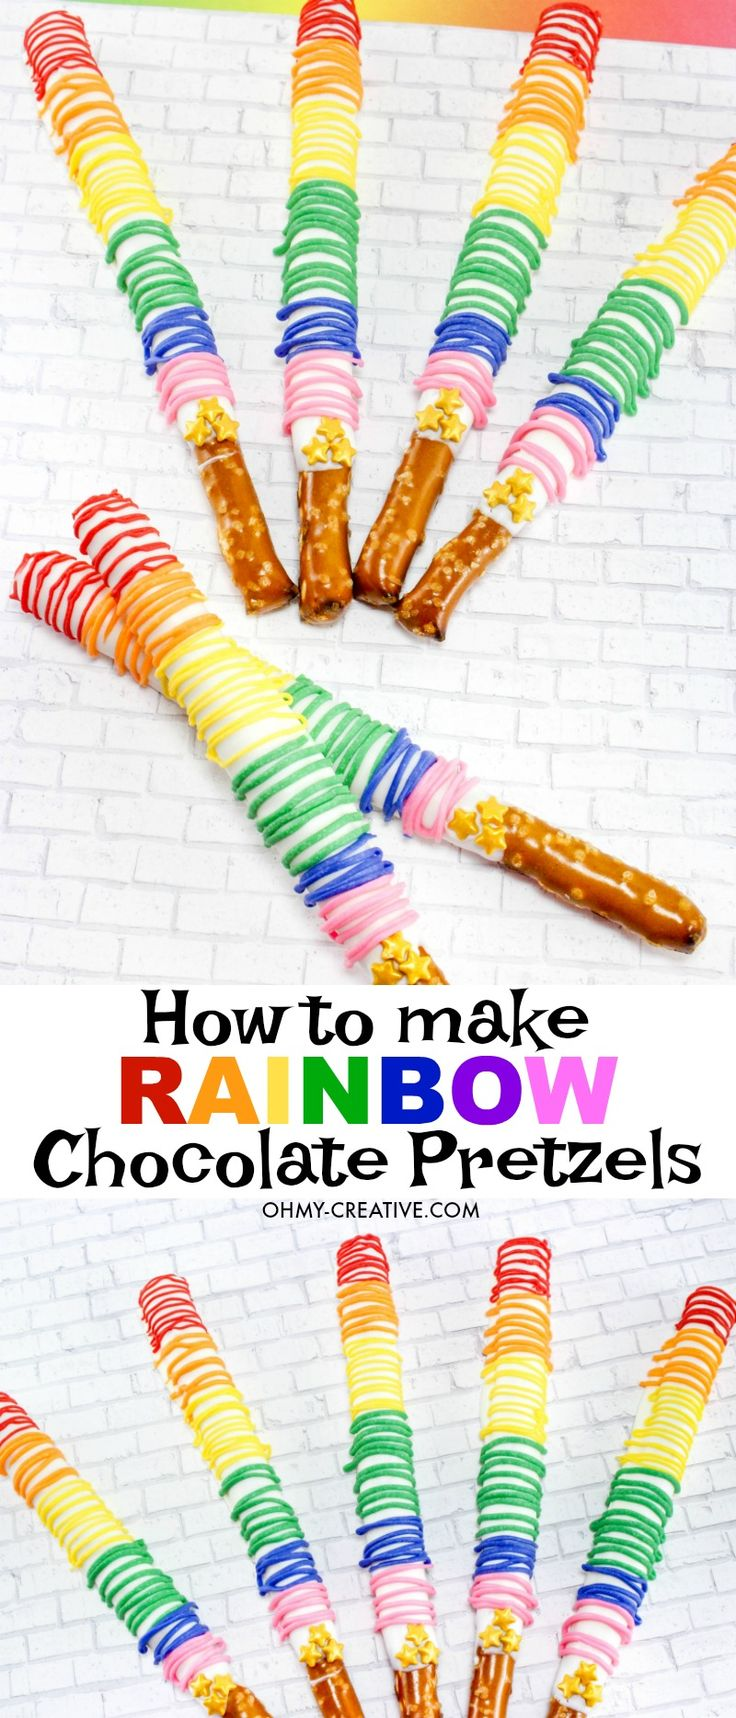 How to make Chocolate Covered Pretzel Rods | Rainbow Pretzel Rods | OHMY-CREATIVE.COM | white chocolate pretzels | Chocolate Pretzel Sticks | Pretzel Rods | Pretzel Sticks | Chocolate Covered Pretzels | Dipped Pretzels | St. Patrick's Day | Rainbow Dessert | Easy Finger Food